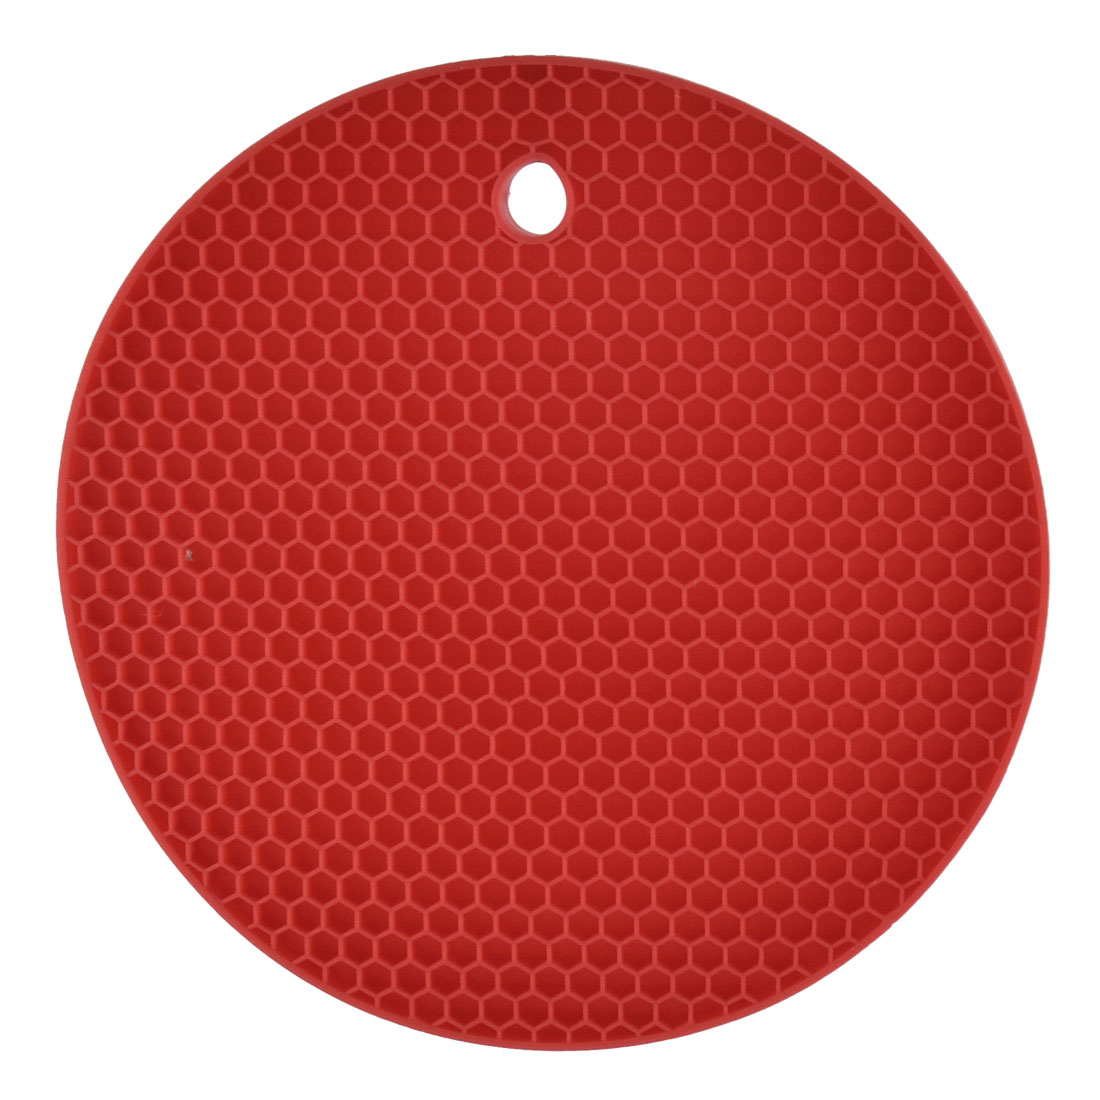 Kitchen Rubber Round Shaped Nonslip Heat Insulated Hot Pot Mat Pad Coaster Red